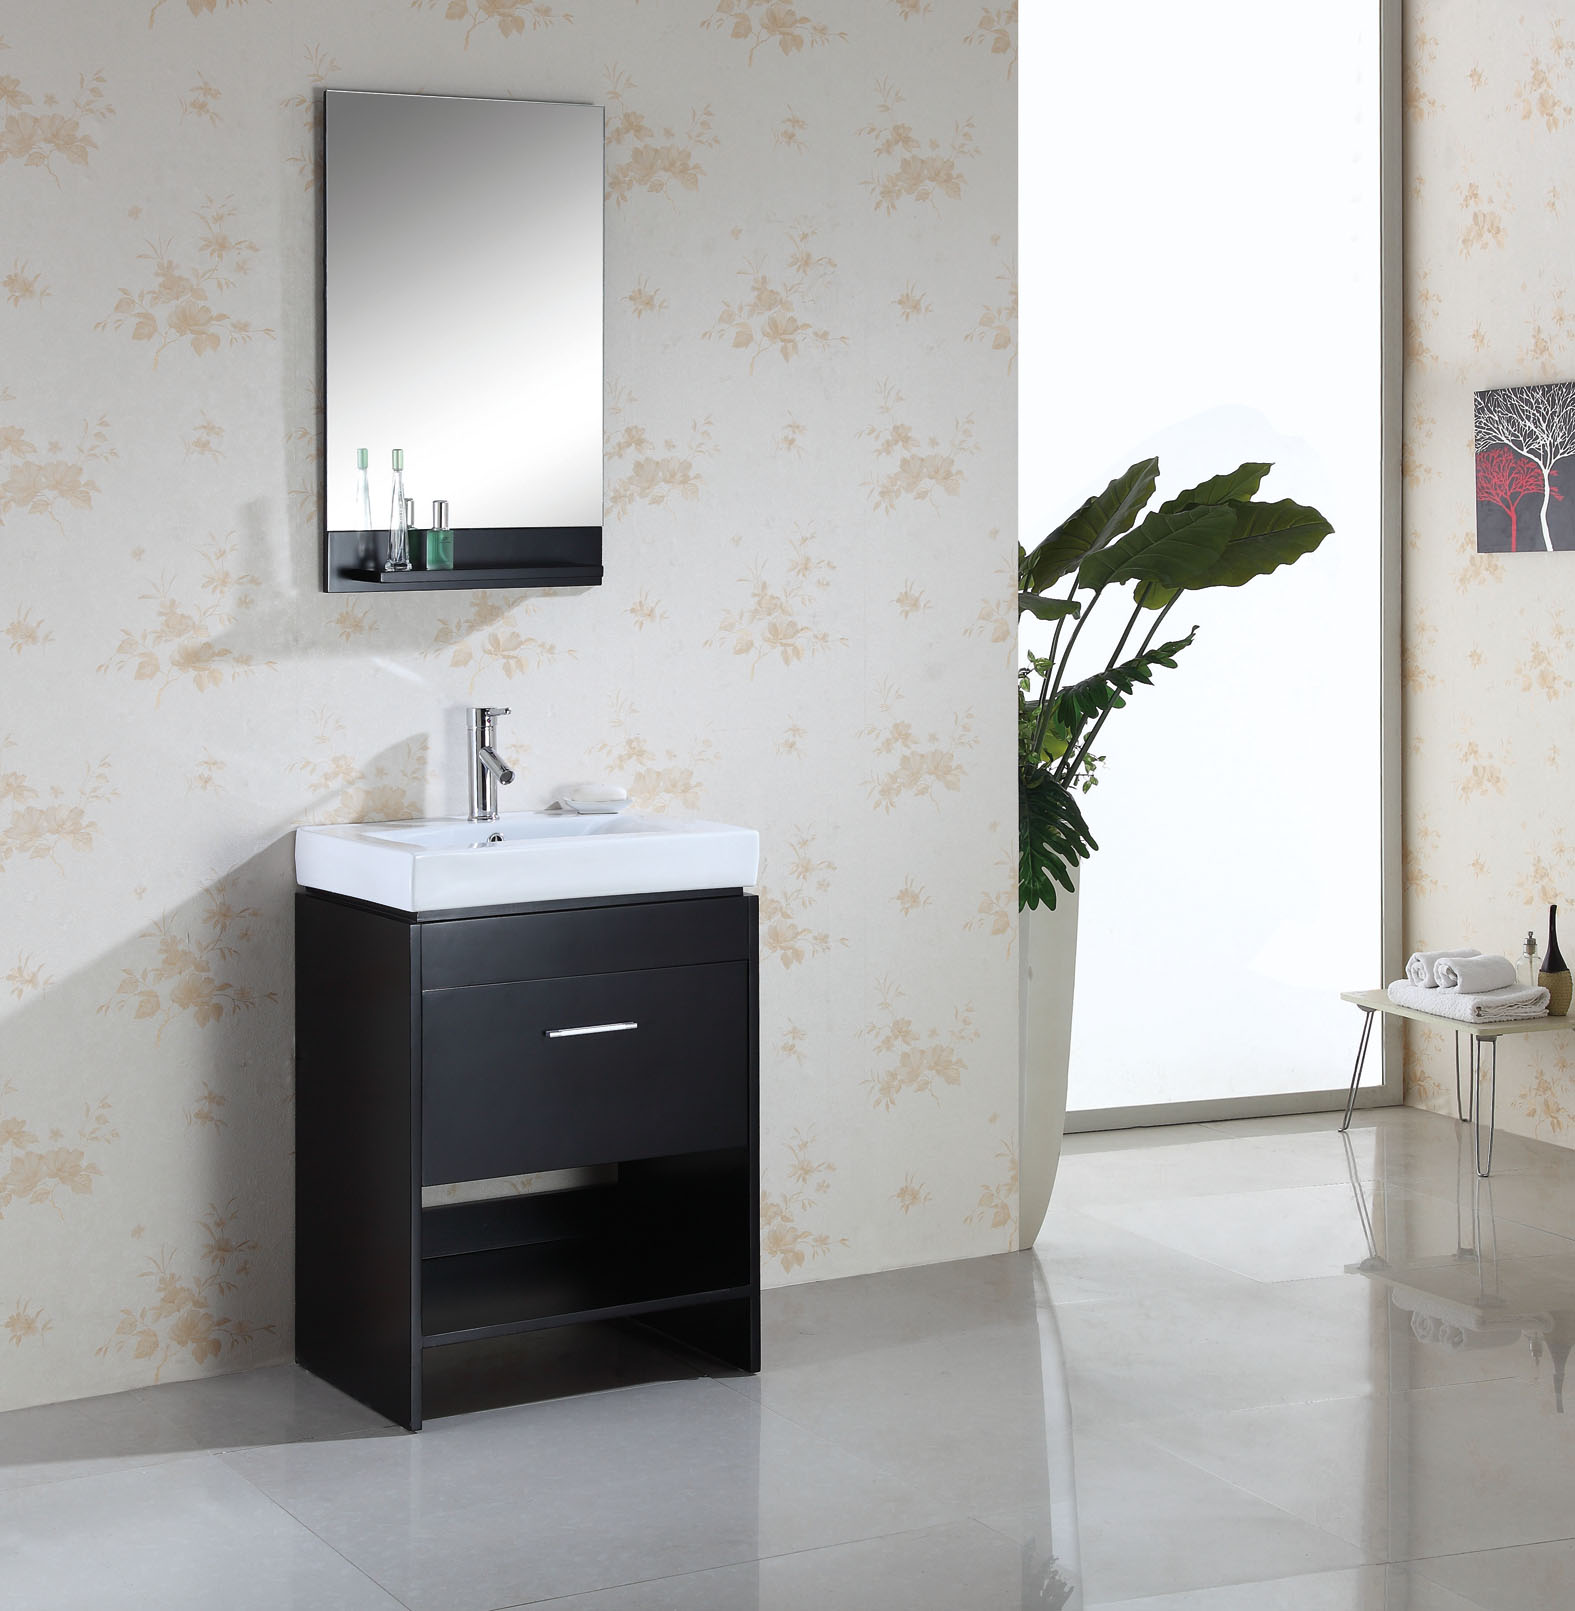 24 inch bea vanity space saving vanity contemporary